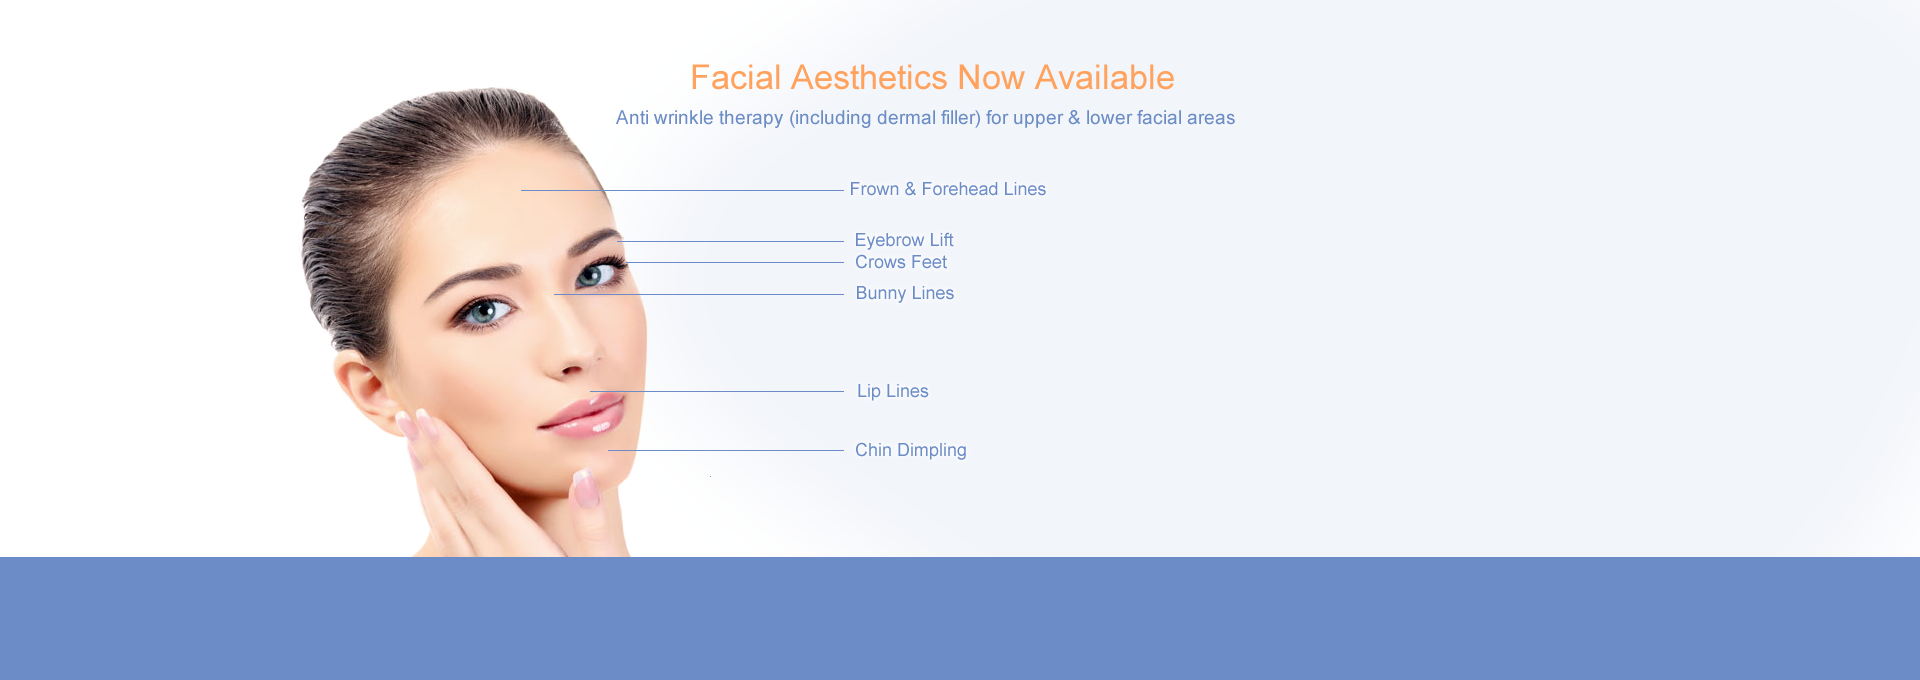 Anti Wrinkle & Facial Aesthetics Treatments in Newry Northern Ireland